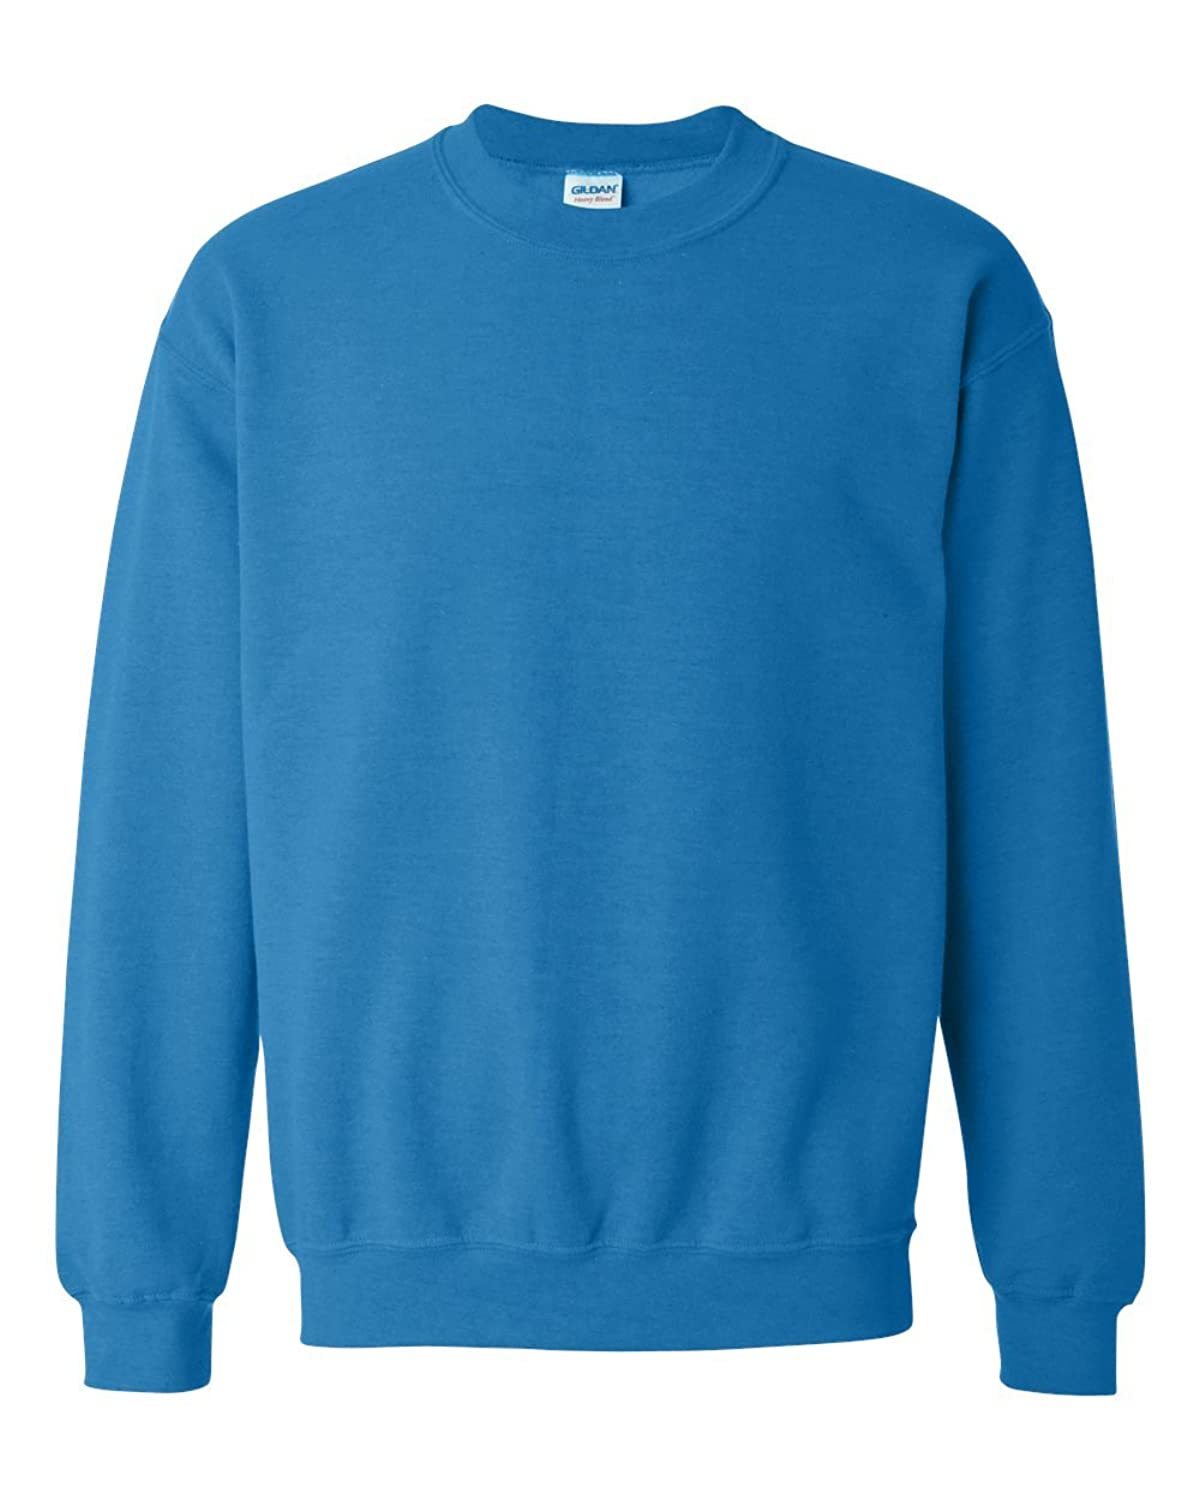 Amazon.com: Gildan Men's Heavy Blend Crewneck Sweatshirt: Clothing